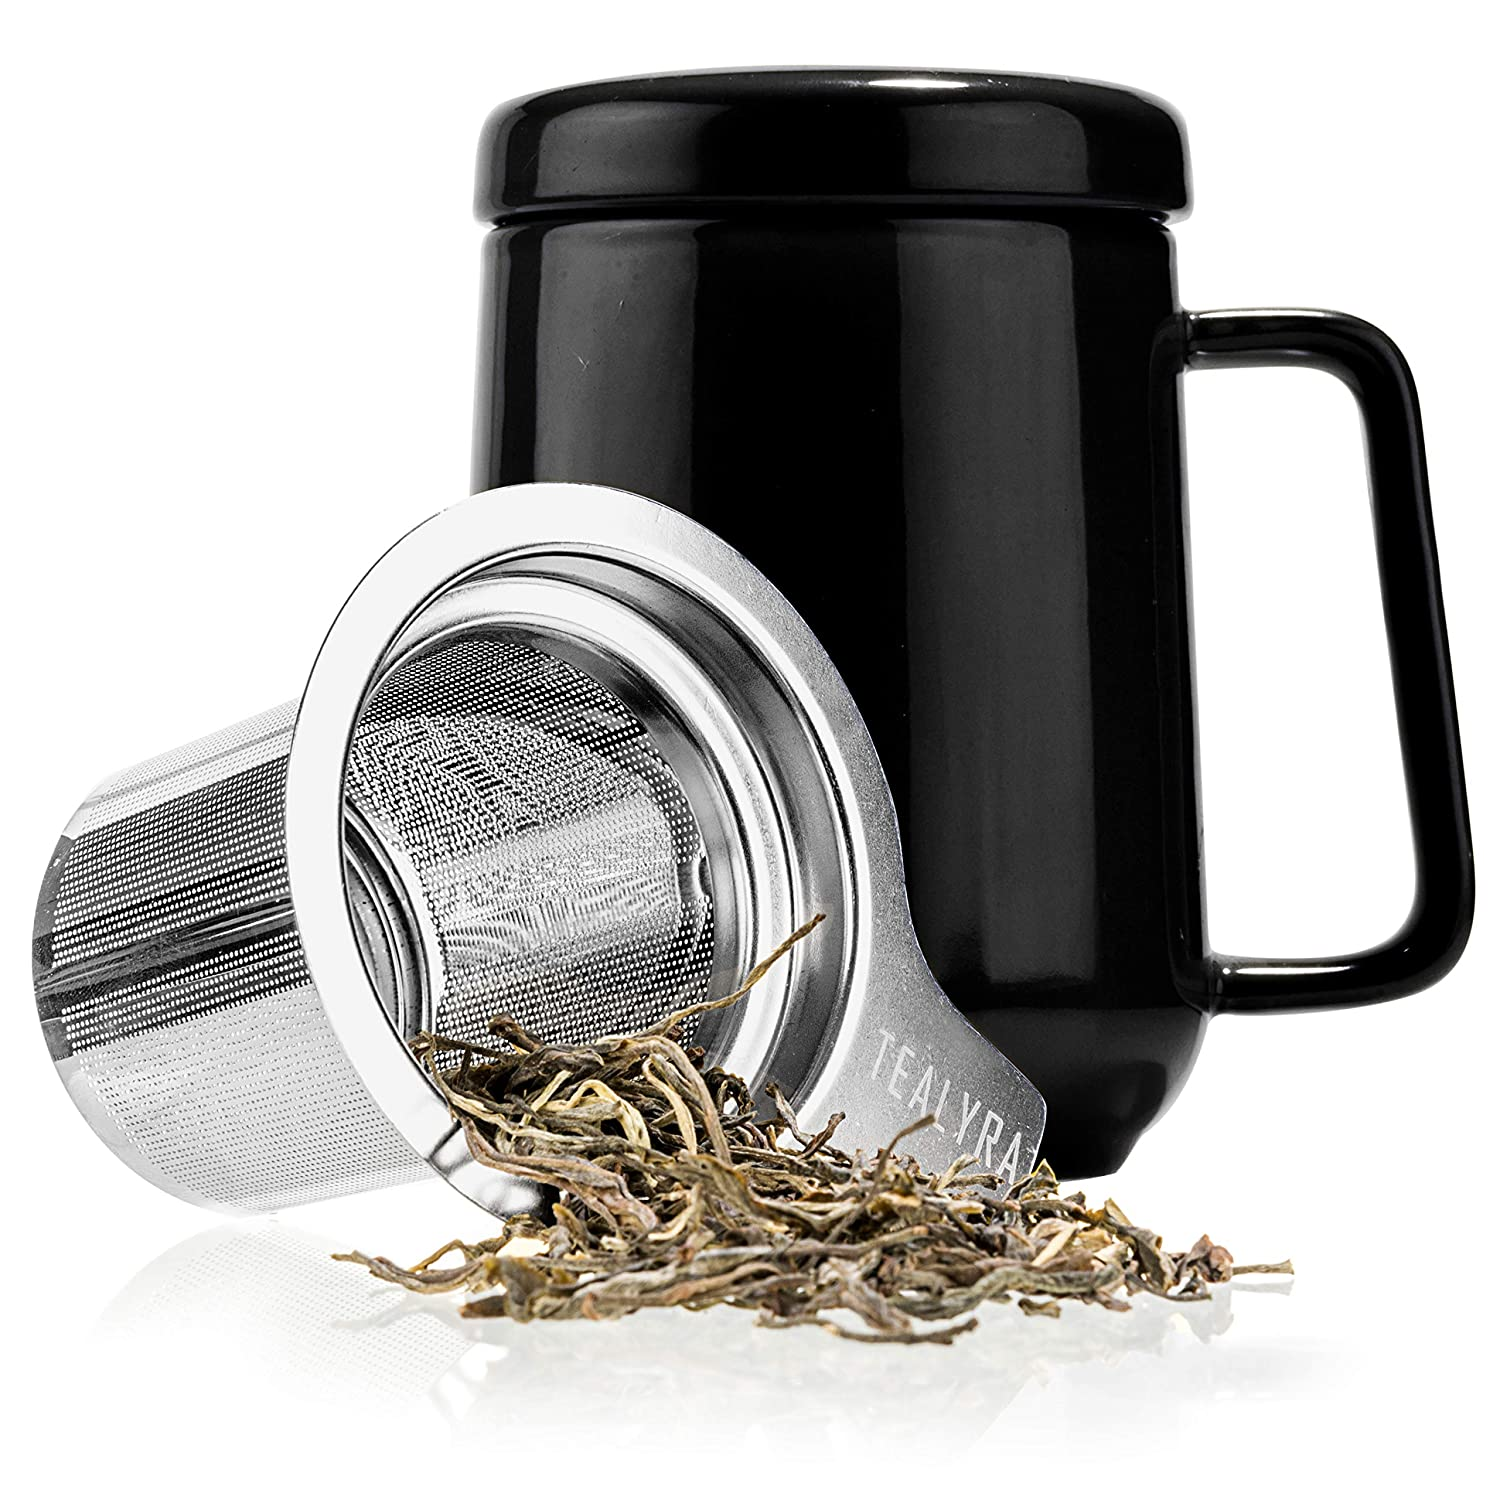 Tealyra - Peak Ceramic Black Tea Cup Infuser - 19-ounce - Large Tea High-Fired Ceramic Mug with Lid and Stainless Steel Infuser - Tea-For-One Perfect Set for Office and Home Uses - 580 milliliter SYNCHKG100022